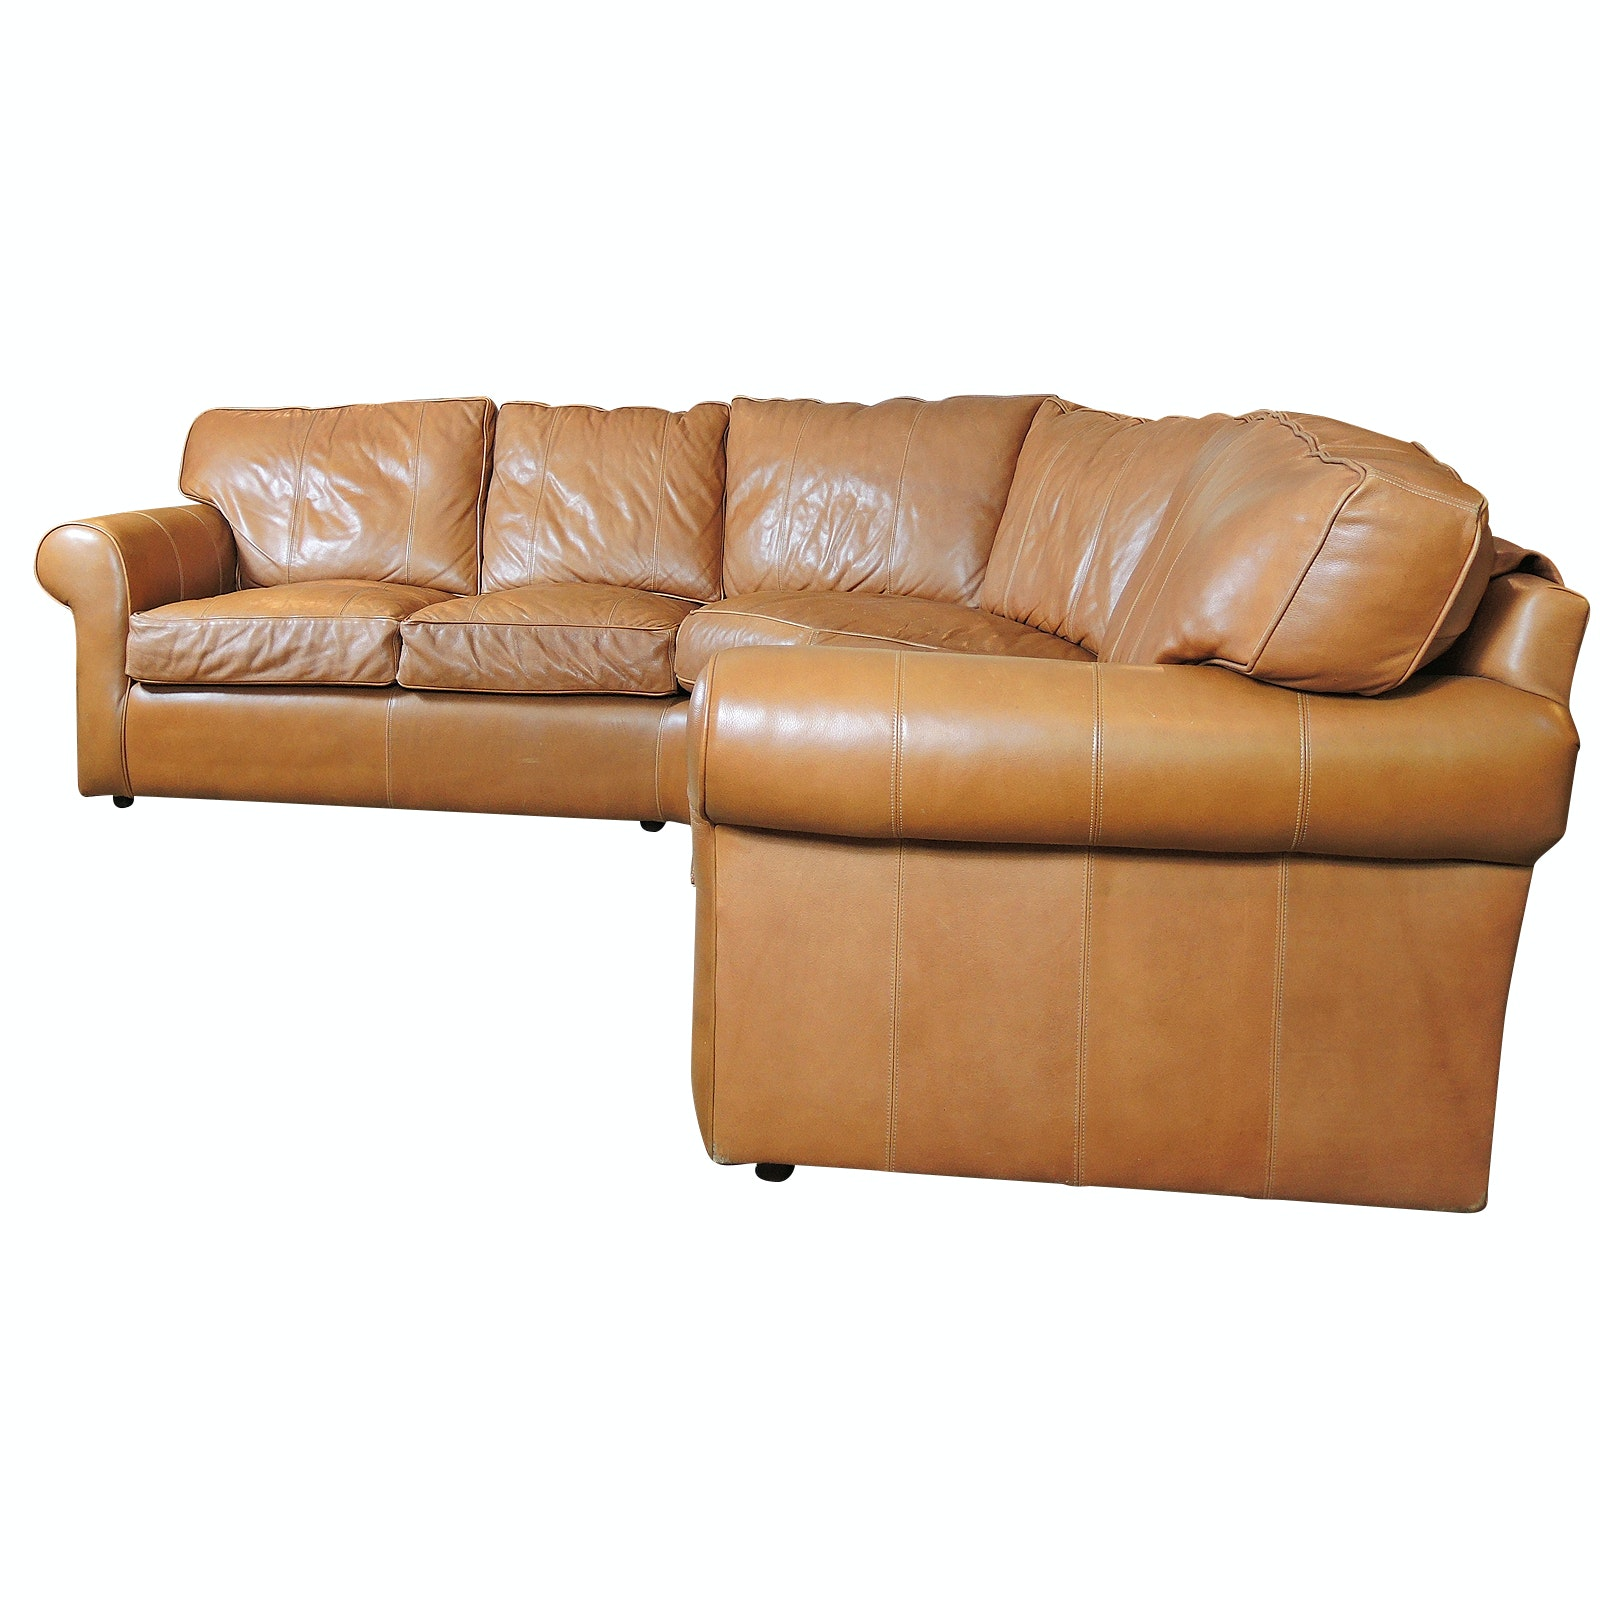 Arhaus Brown Leather Sectional Sofa, Late 20th Century